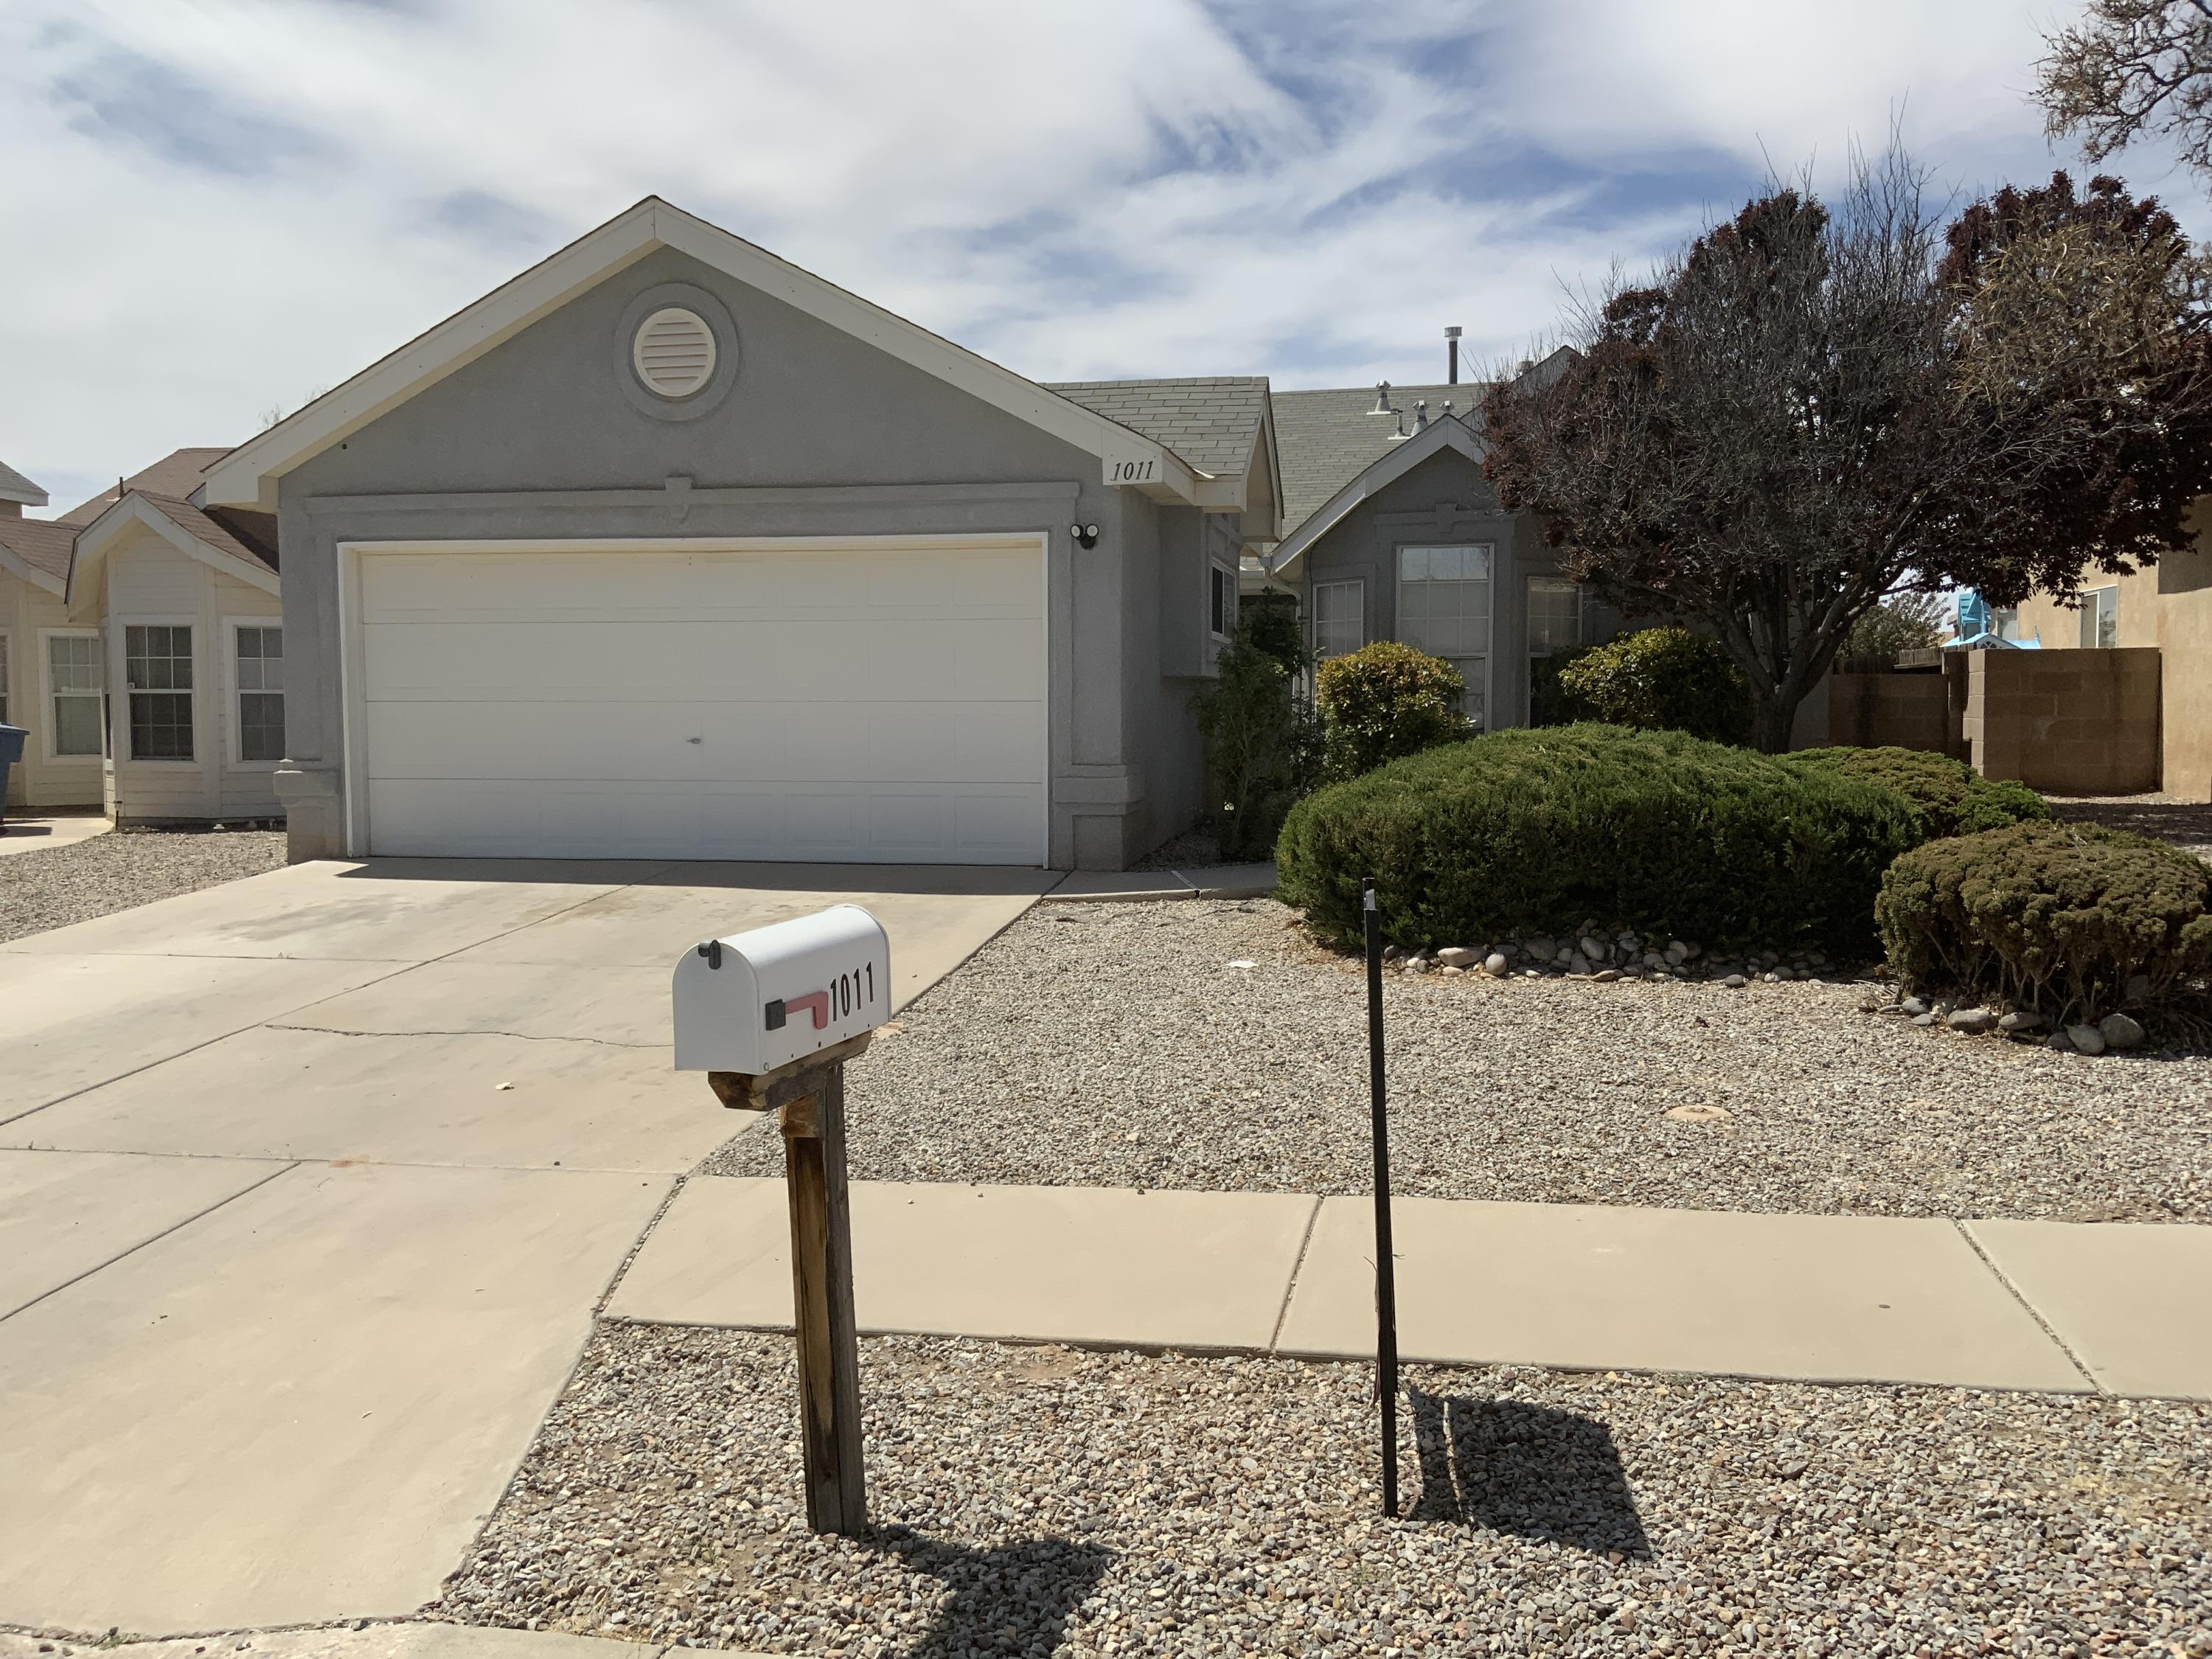 Get away from the hustle and bustle of the Big City. This home is an easy commute to Albuquerque. Great Location easy access to 1-25, Close to all the amenities The Village of Los Lunas has to offer. Welcome home to this 3 bedroom, 2 bath, 2 car garage Sivage Thomas home. This home has been freshly painted mid September 2020 and new carpet mid September 2020. Mature landscaped front yard, no neighbor to the rear of the home. Great parks and walking paths. This home is just waiting for your personal touch.